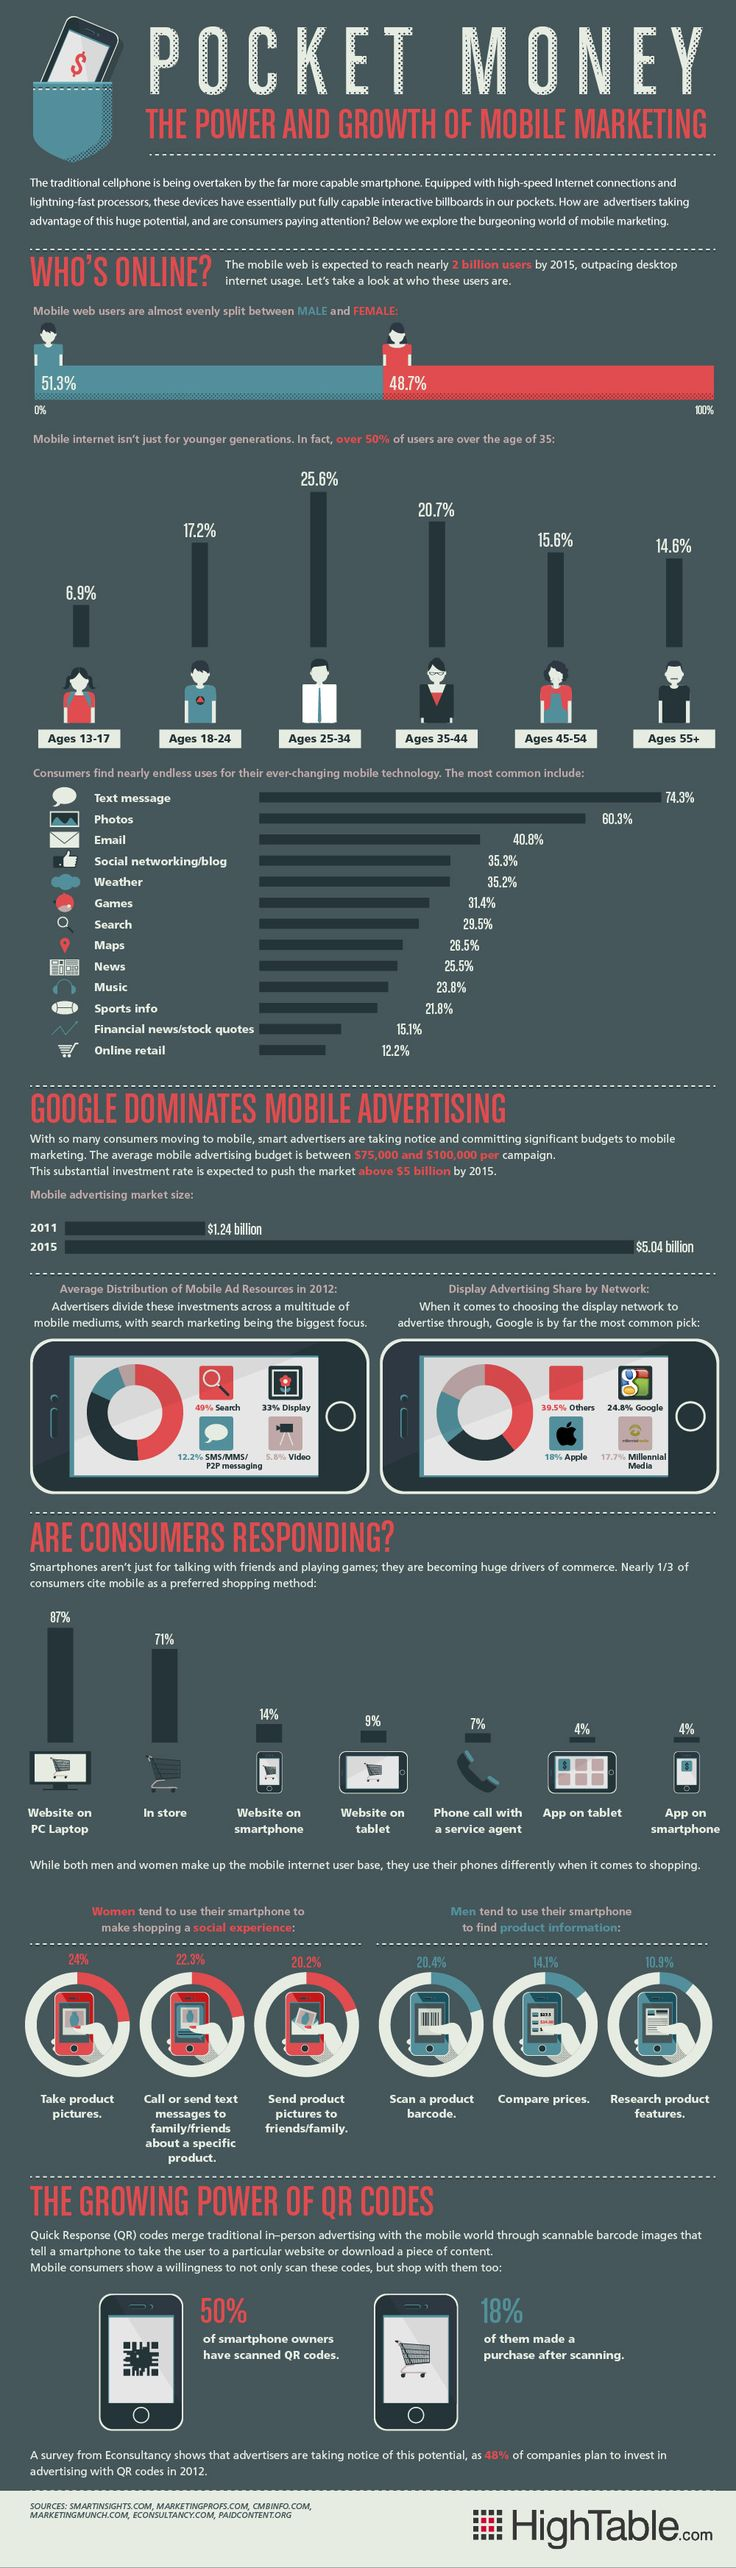 Pocket Money - The Power and Growth of Mobile Marketing